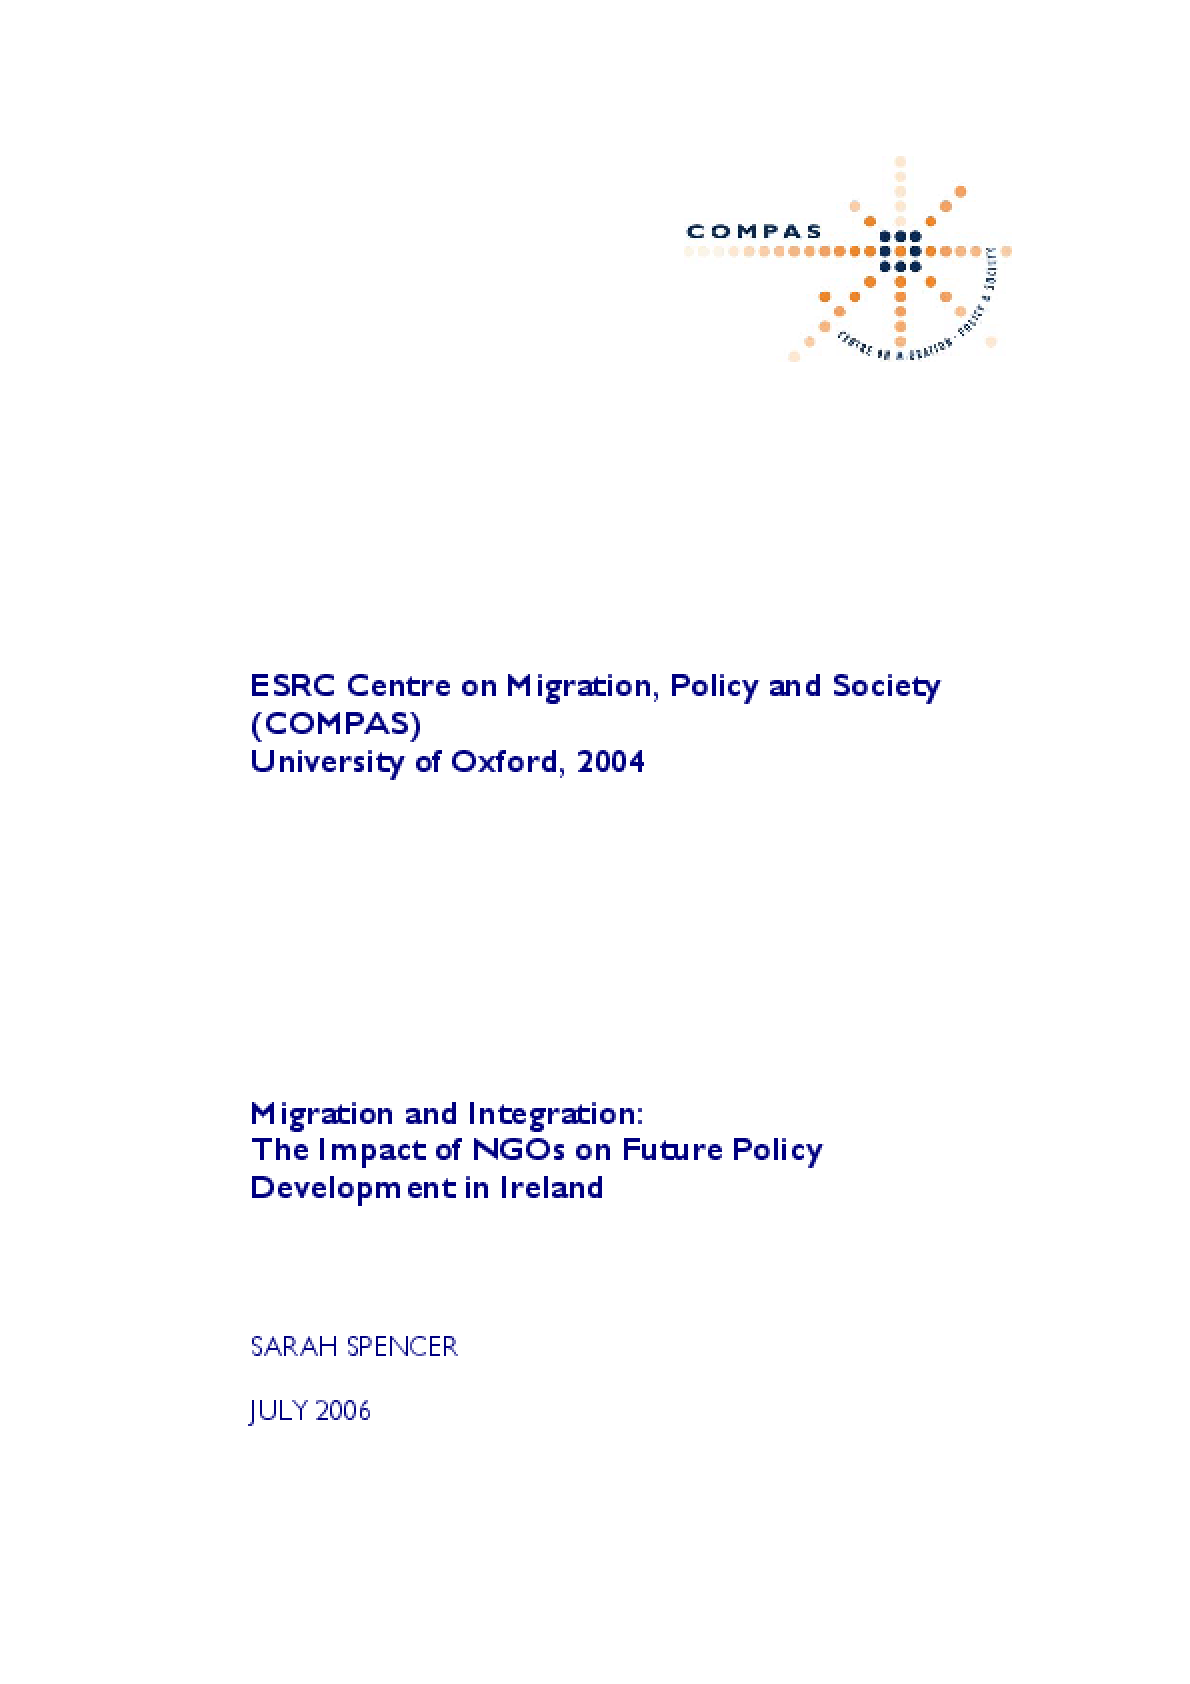 Migration and Integration: The Impact of NGOs on Future Policy Development In Ireland (Full Report)